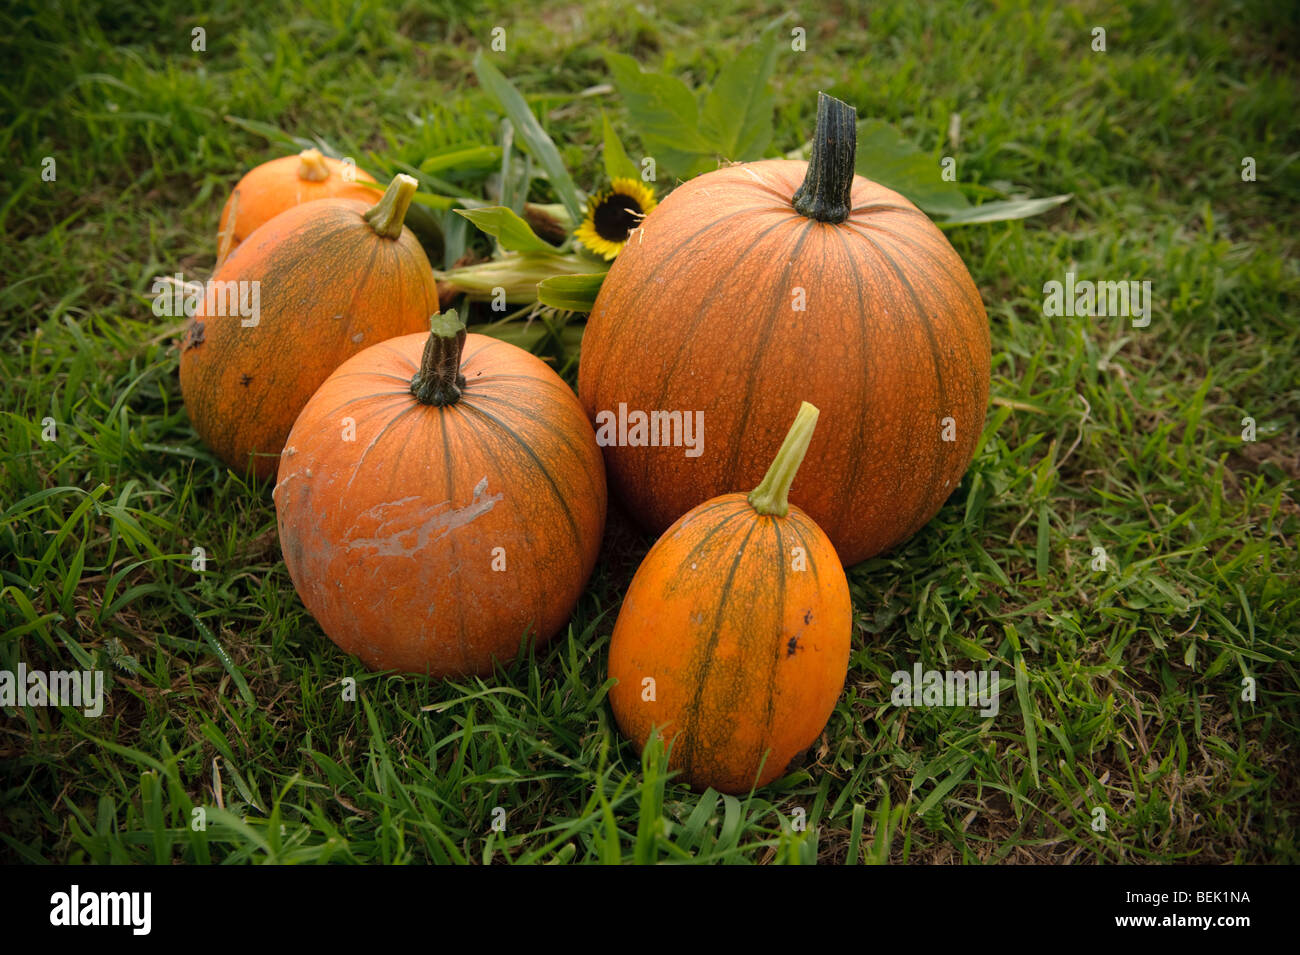 five 5 fresh Freshly harvested bright orange pumpkins grown on an allotment garden in the UK - Stock Image